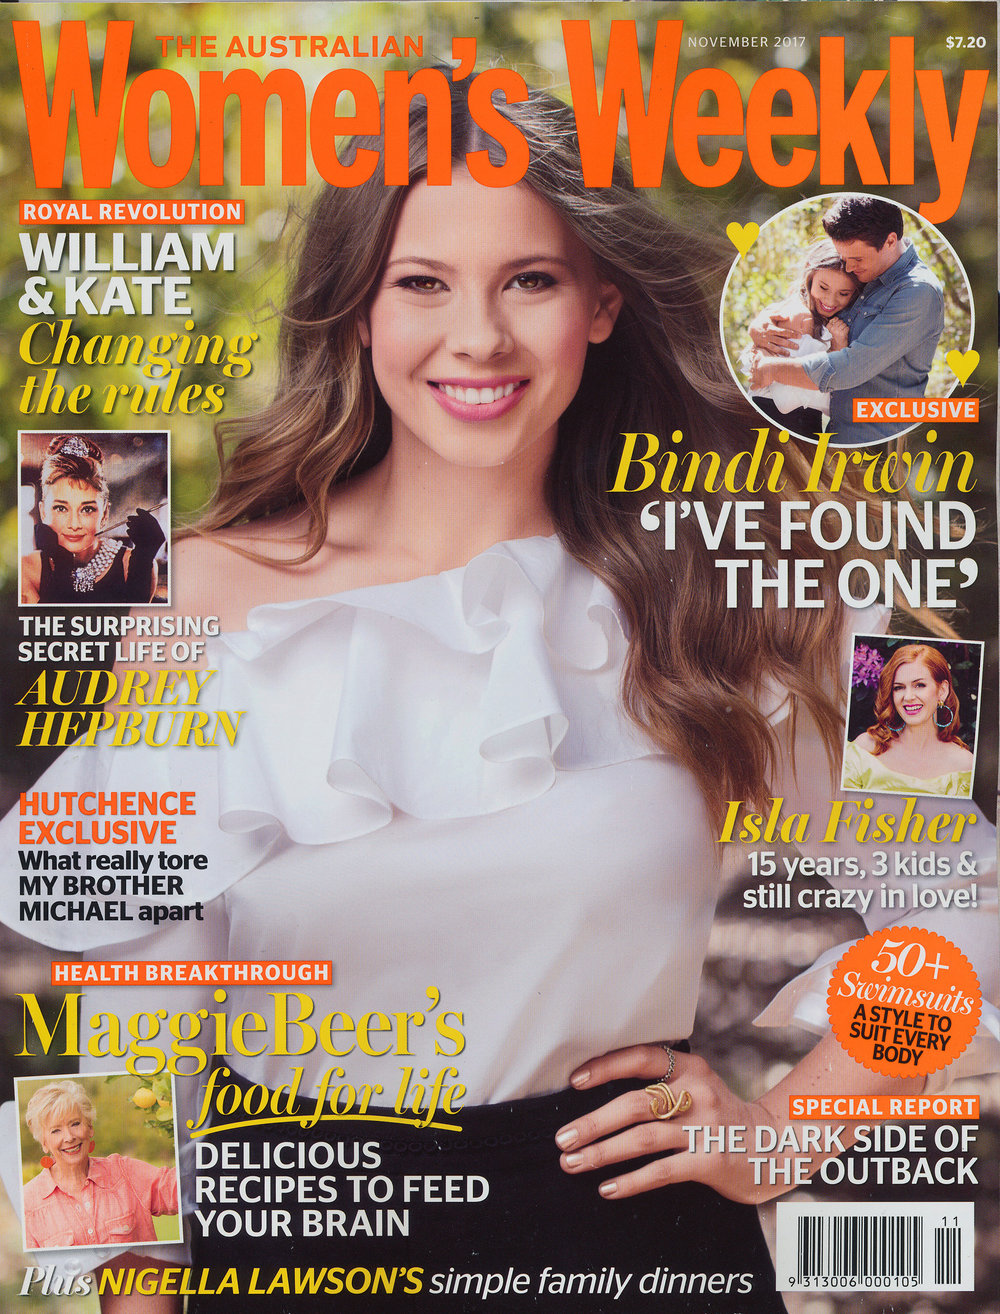 """Bindi Irwin"" for The Australian Women's Weekly Magazine.       Russell Shakespeare 2017"